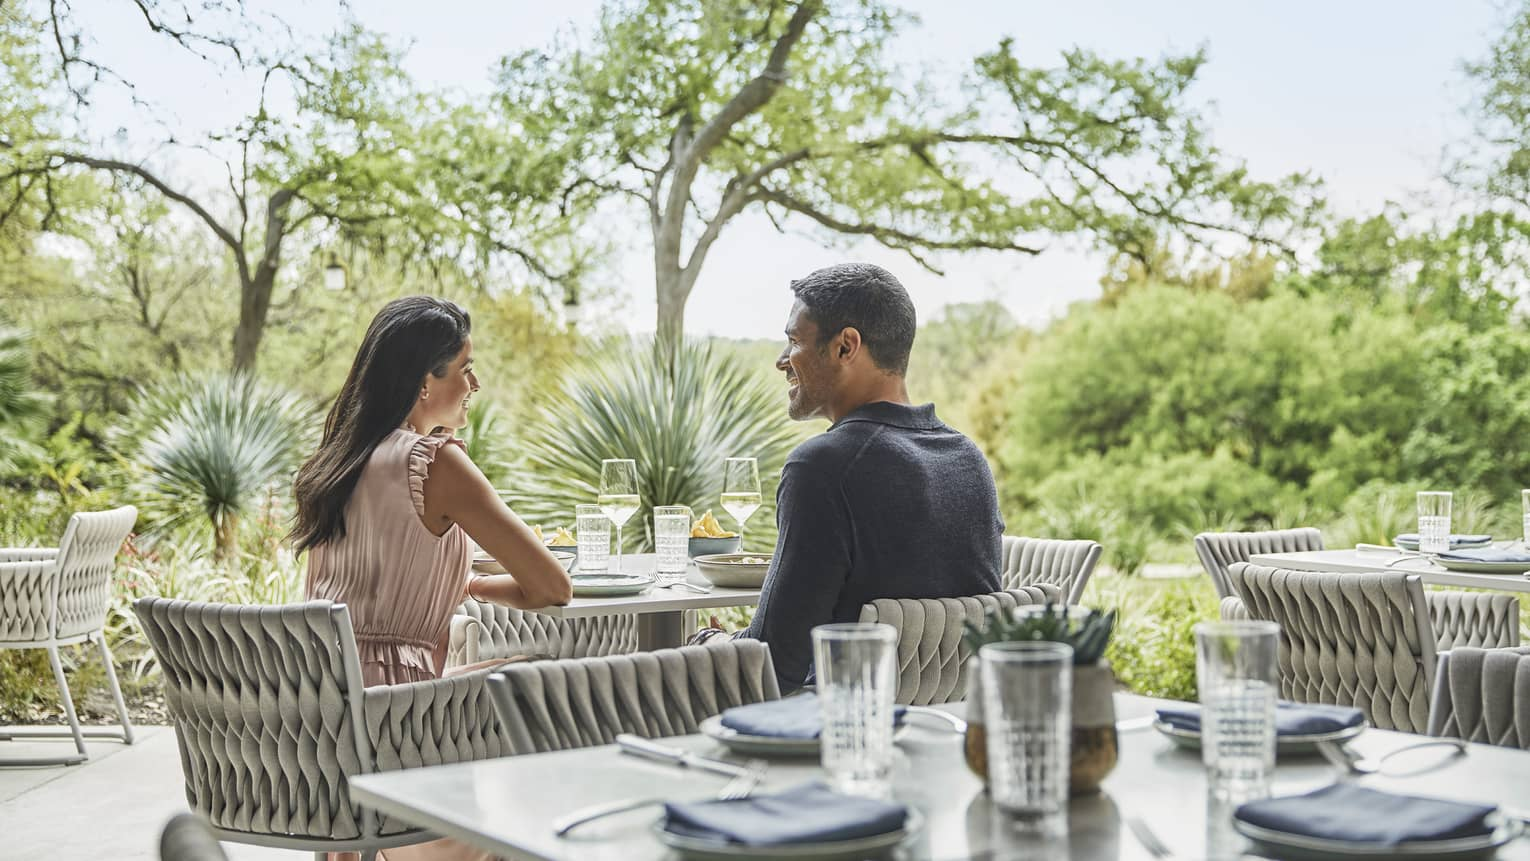 A couple shares a romantic meal on the outdoor terrace at Ciclo.